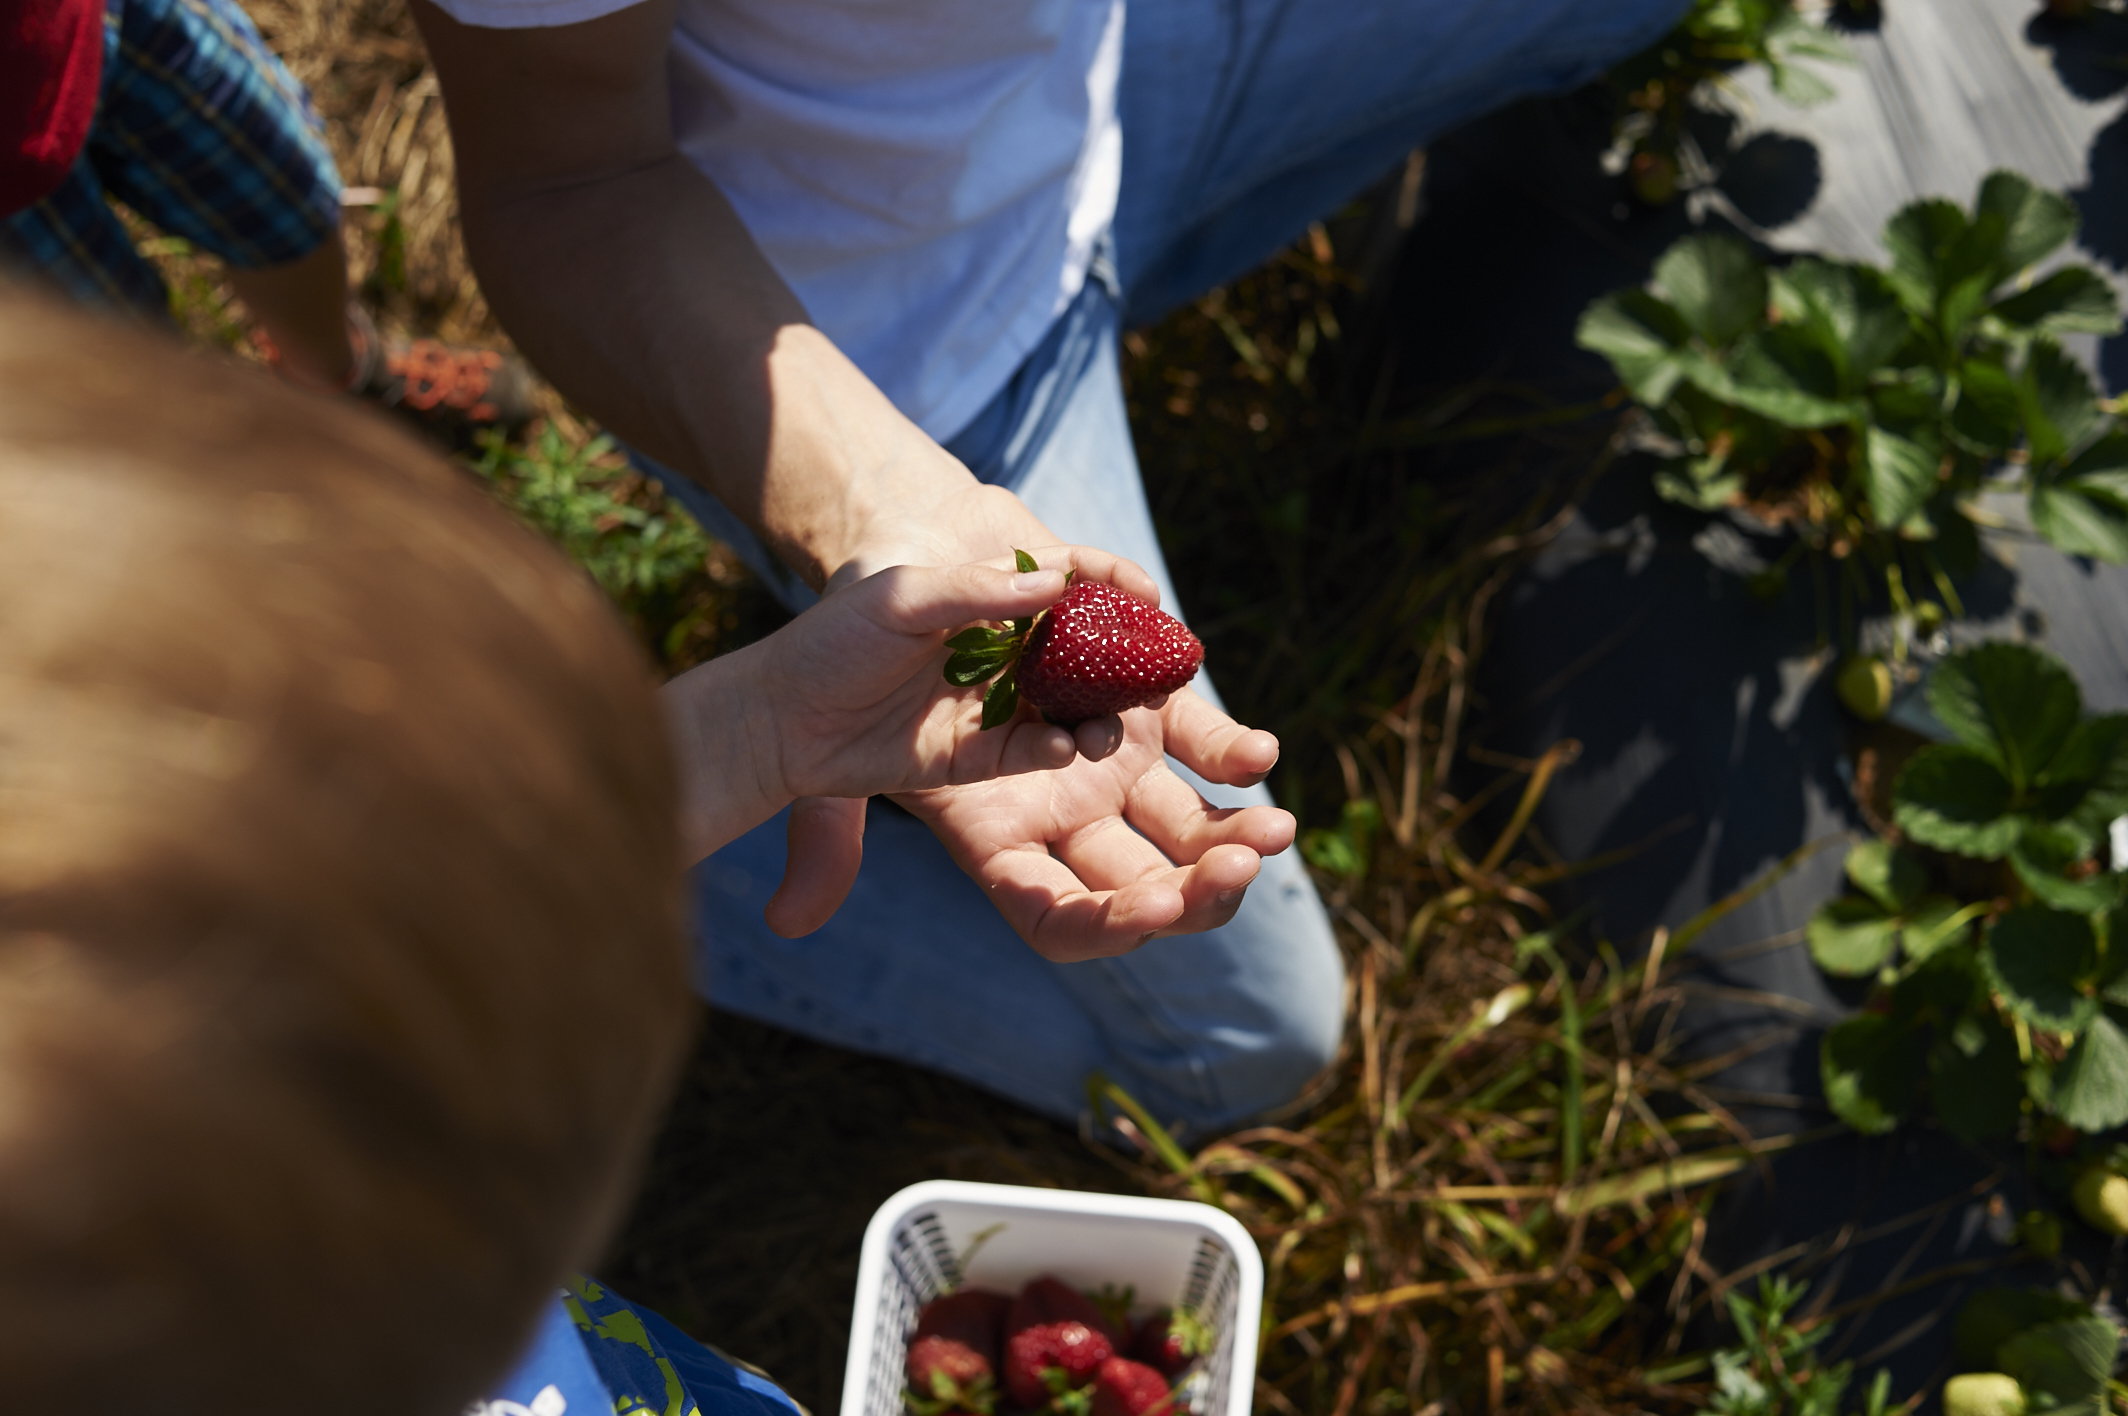 its the everyday photography: strawberry picking and country living